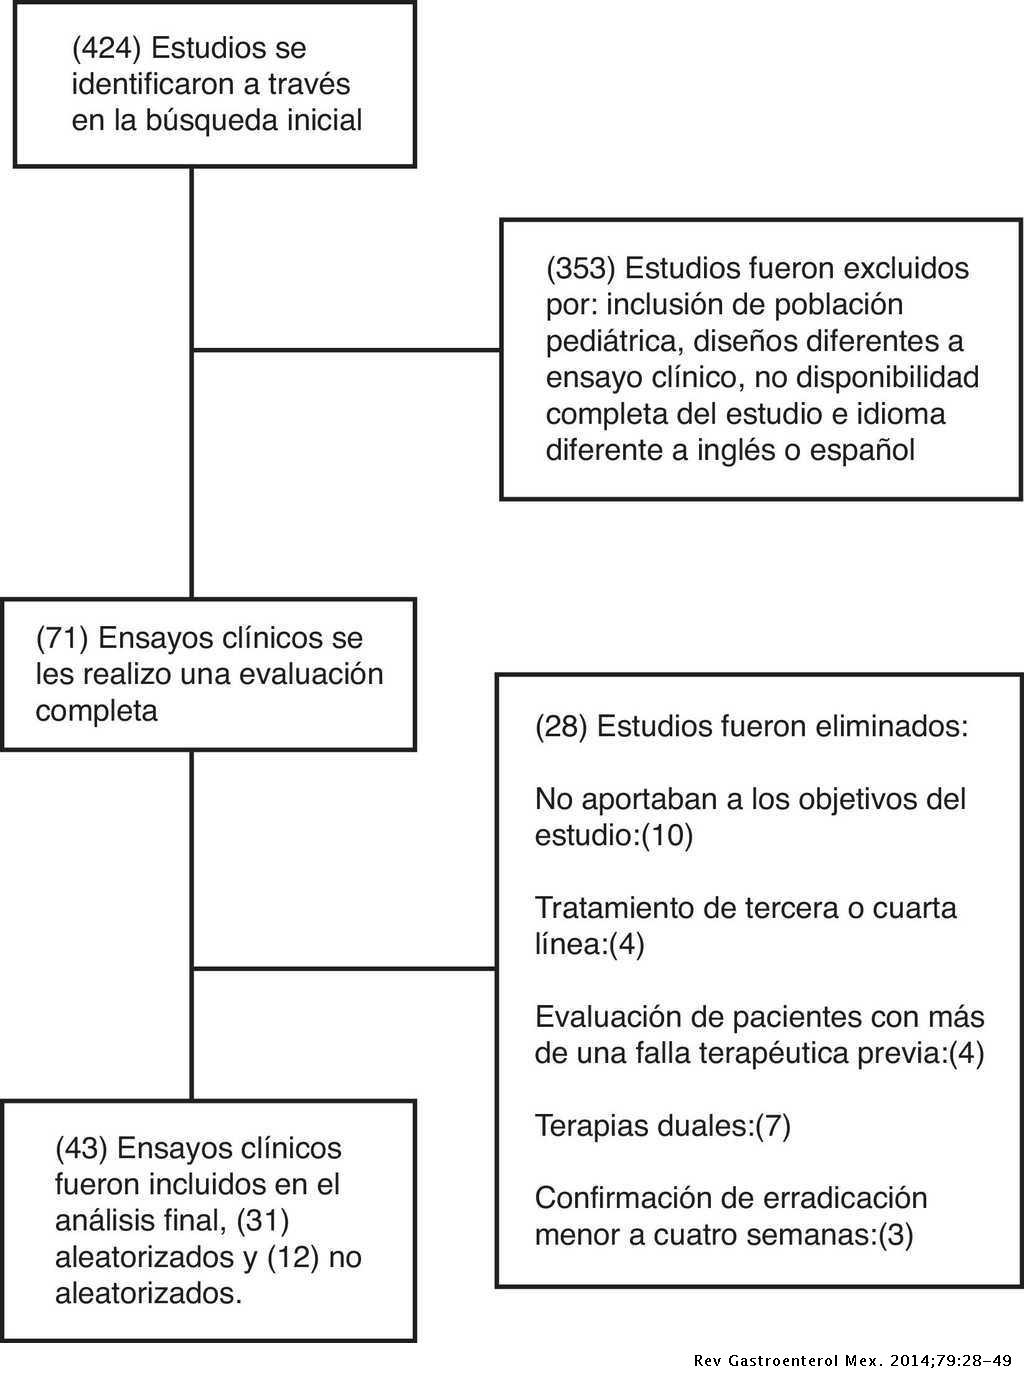 Tratamiento Ideal Del Helicobacter Pylori Una Revision